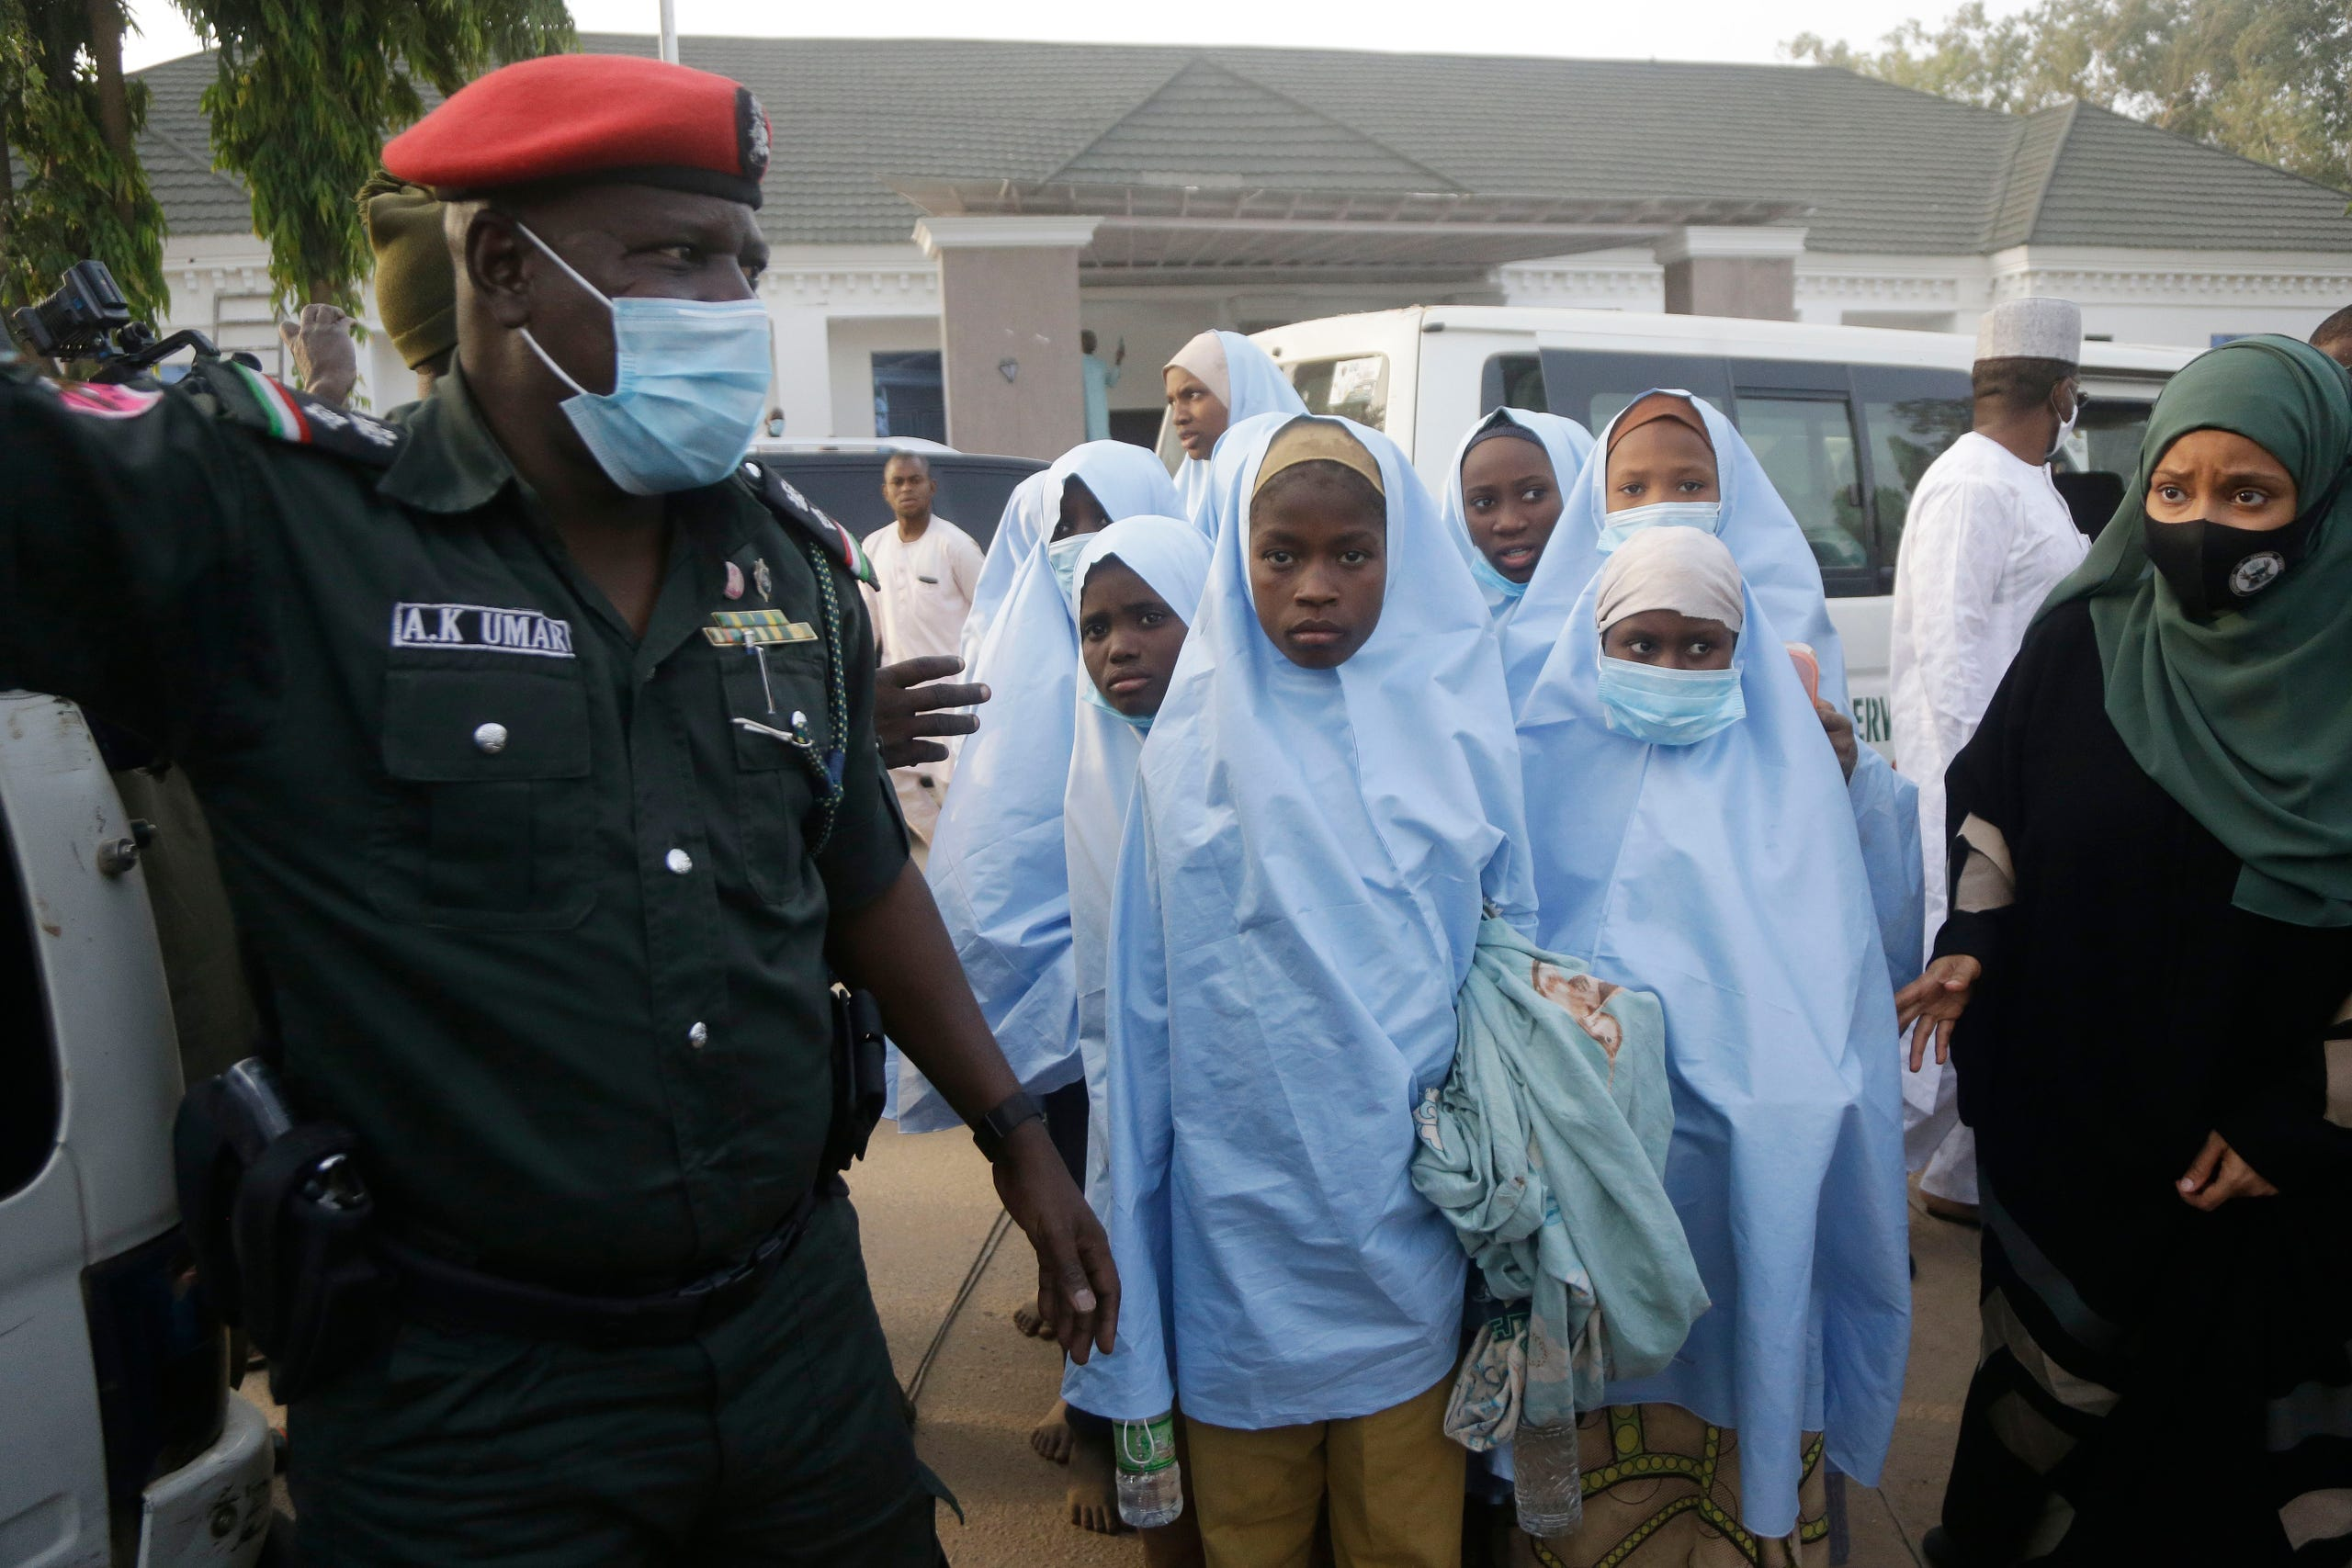 Some of the students who were abducted from the Government Girls Secondary School in Jangebe, Nigeria, on March 2, 2021, in Gusau, northern Nigeria.